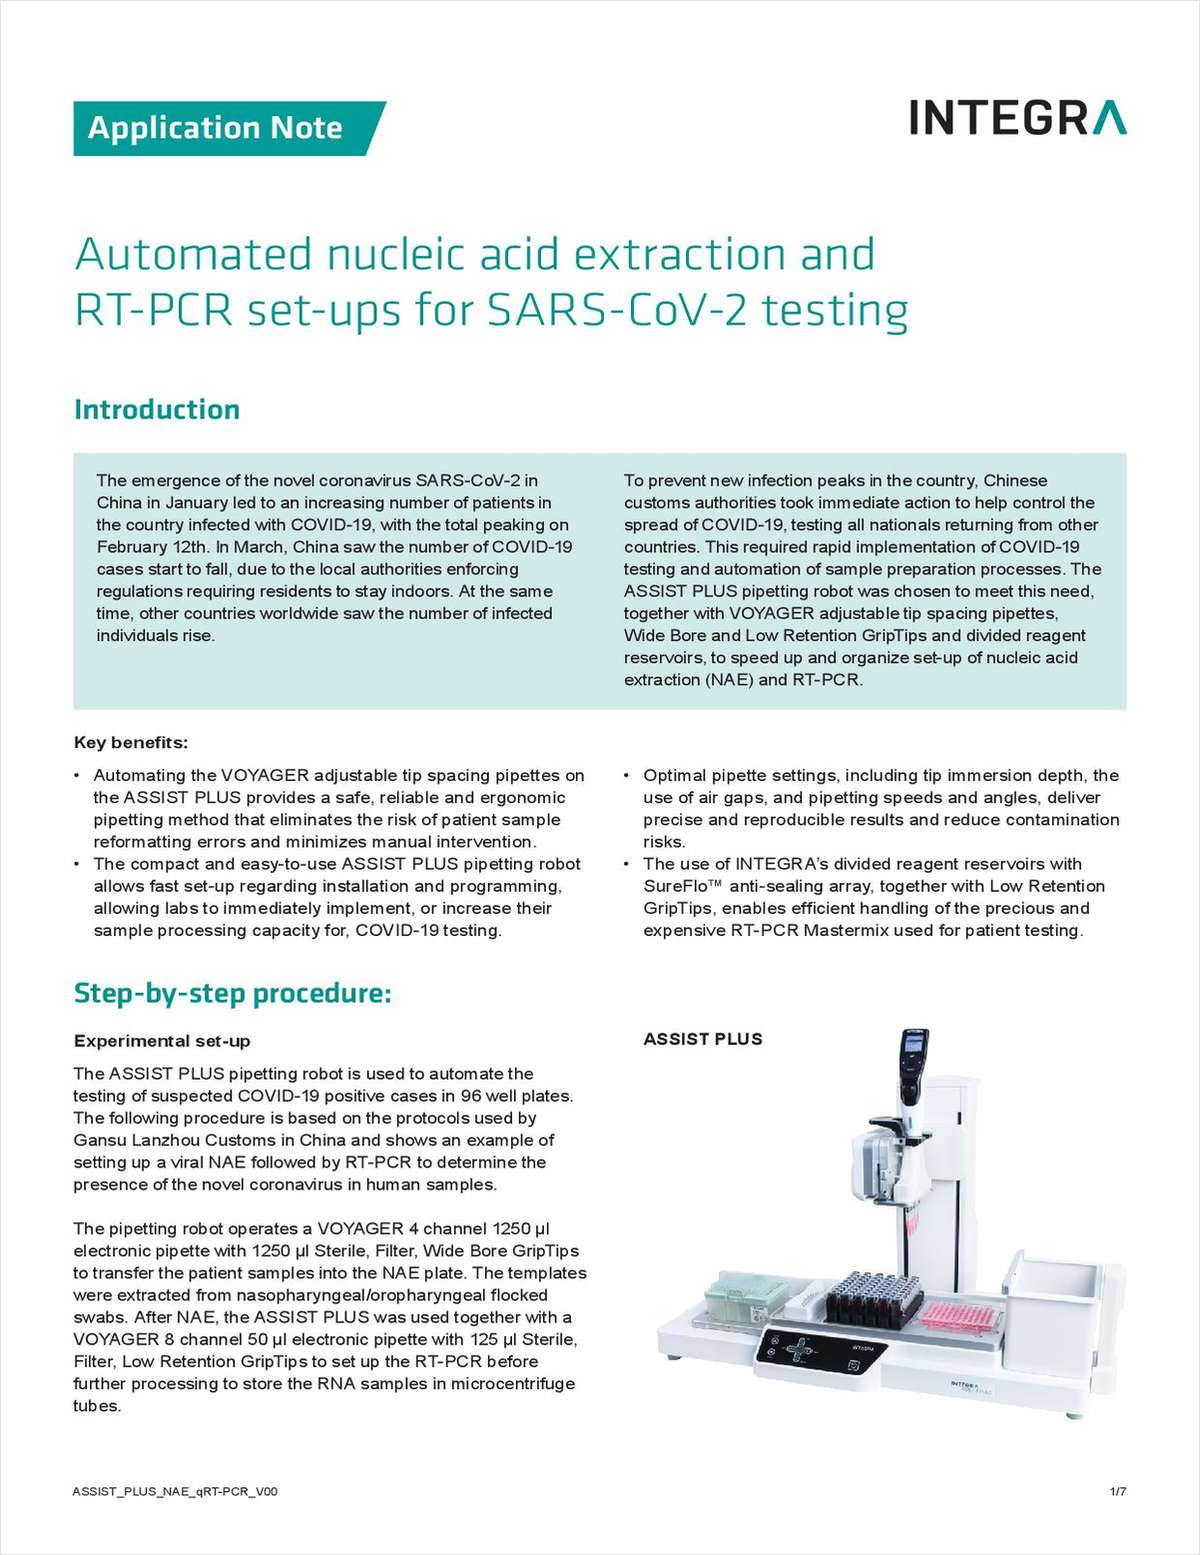 Automated Nucleic Acid Extraction and RT-PCR Setups for SARS-CoV-2 Testing